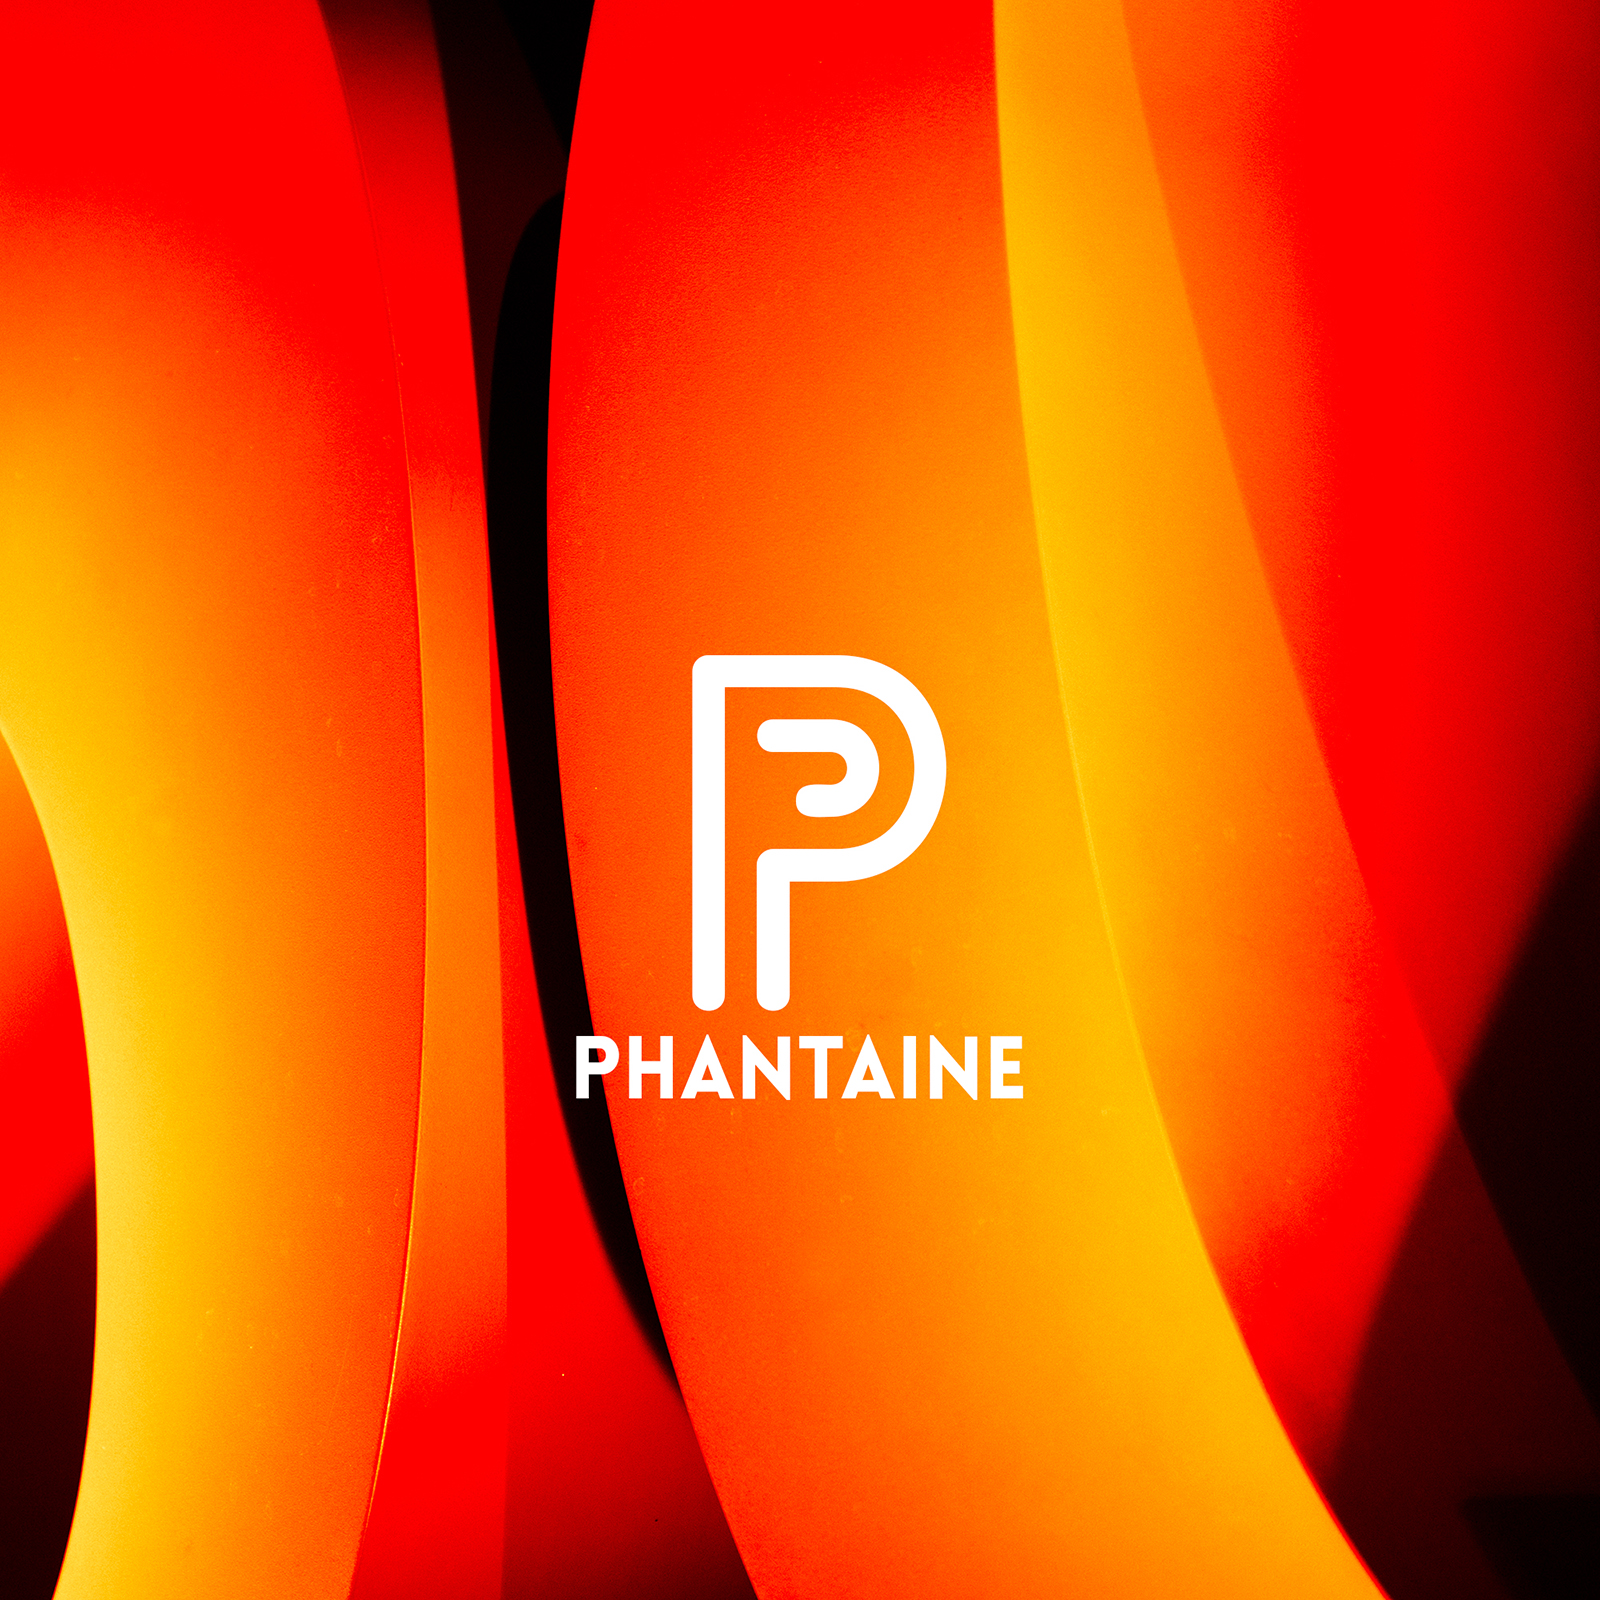 Phantaine Fire Flower (P logo).jpg